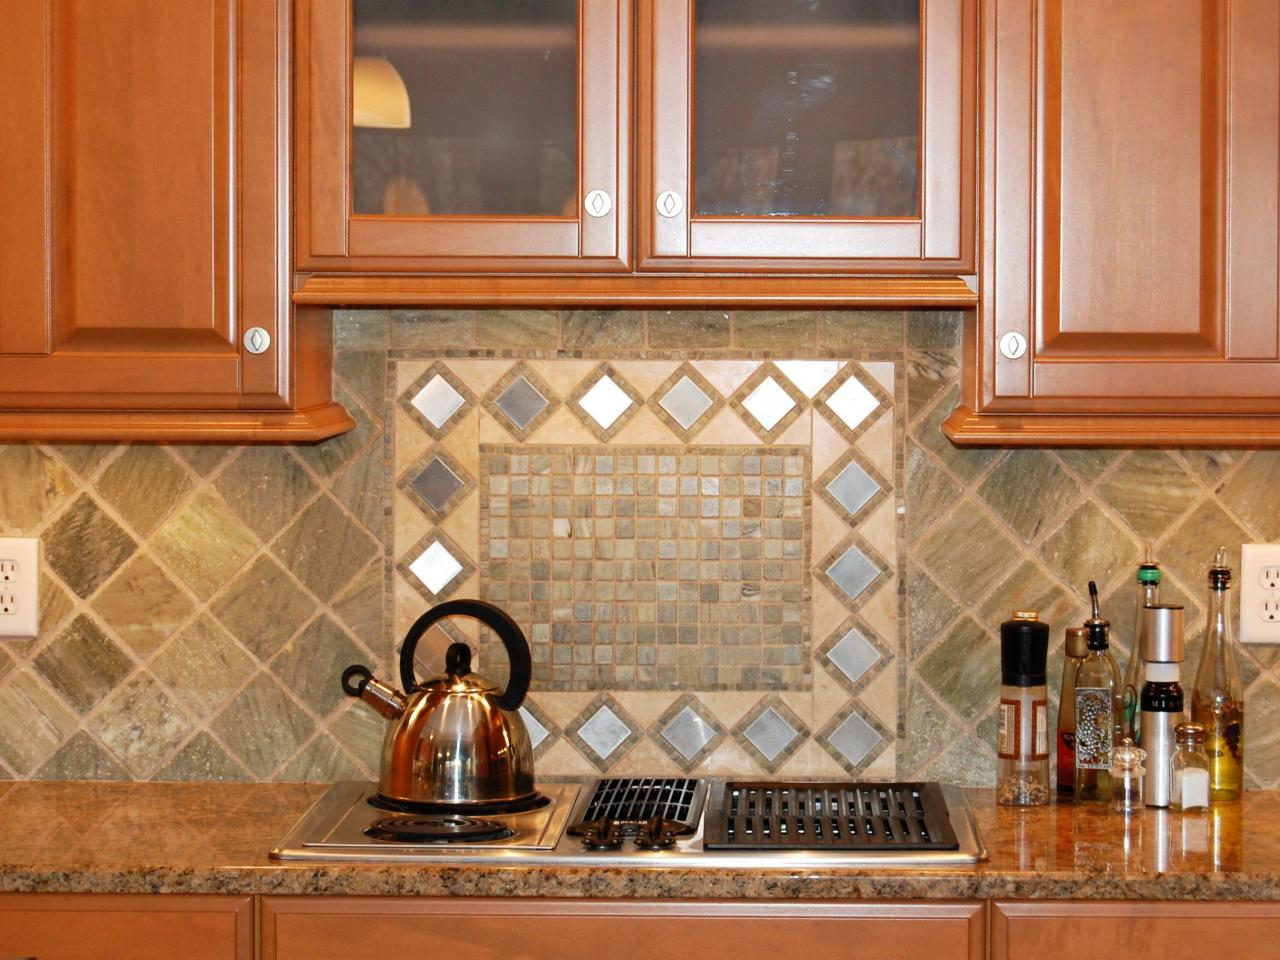 How to plan and prep for a tile backsplash project diy how to plan and prep for a tile backsplash project dailygadgetfo Image collections